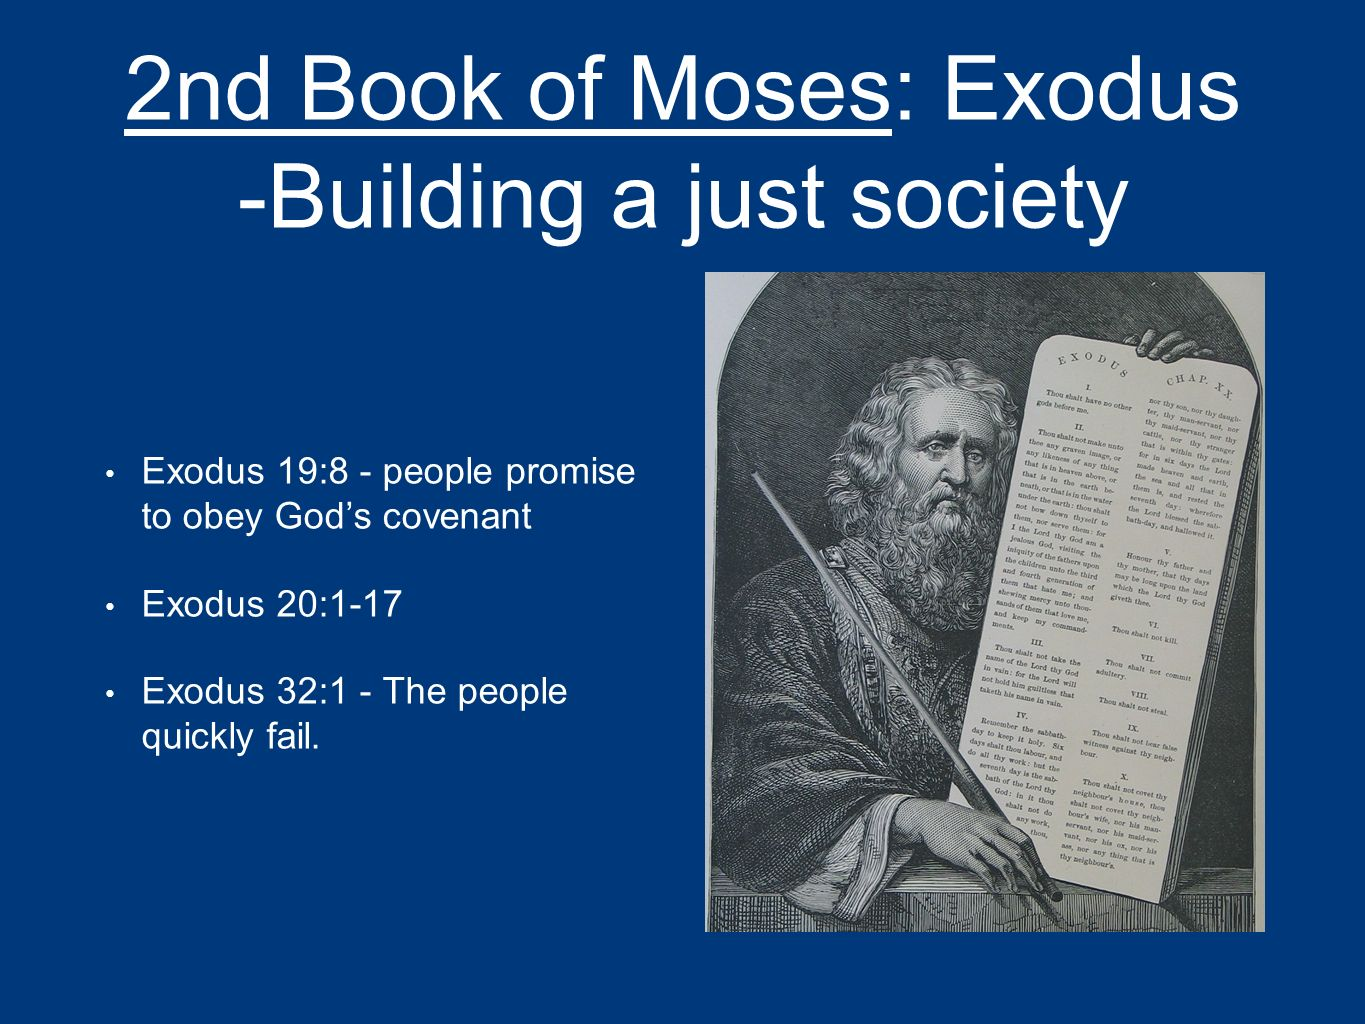 moses in the book of exodus essay Bella alvarez miss akers honors english 9 19 october 2017 moses some would refer to him as a hero and others a rebel though in my eyes i view him.